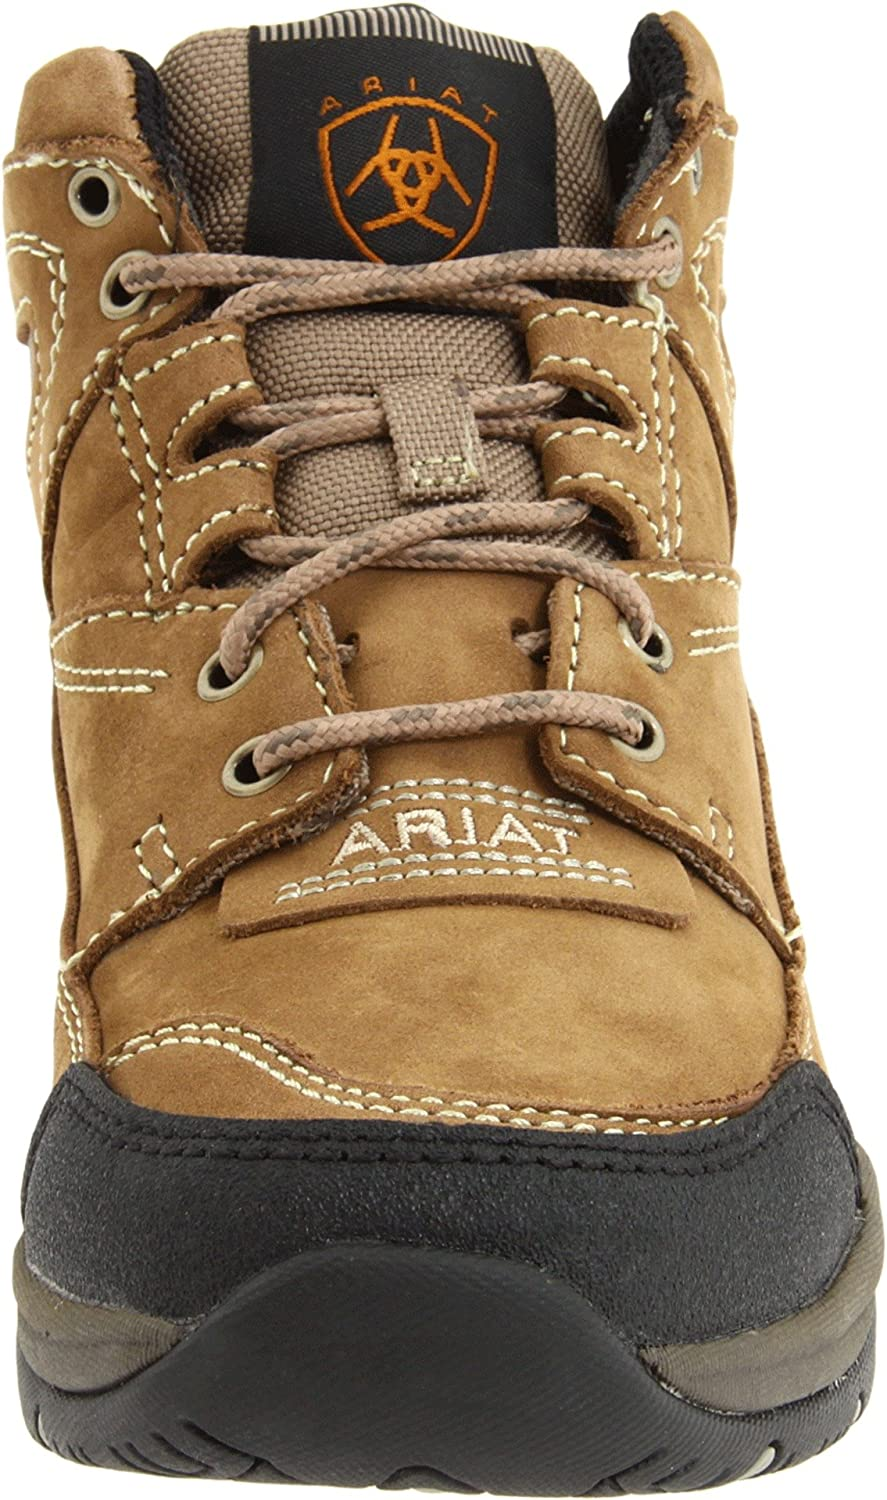 Ariat Women's - Terrain Hiking Boot B001HT934W 6.5 2E US|Taupe